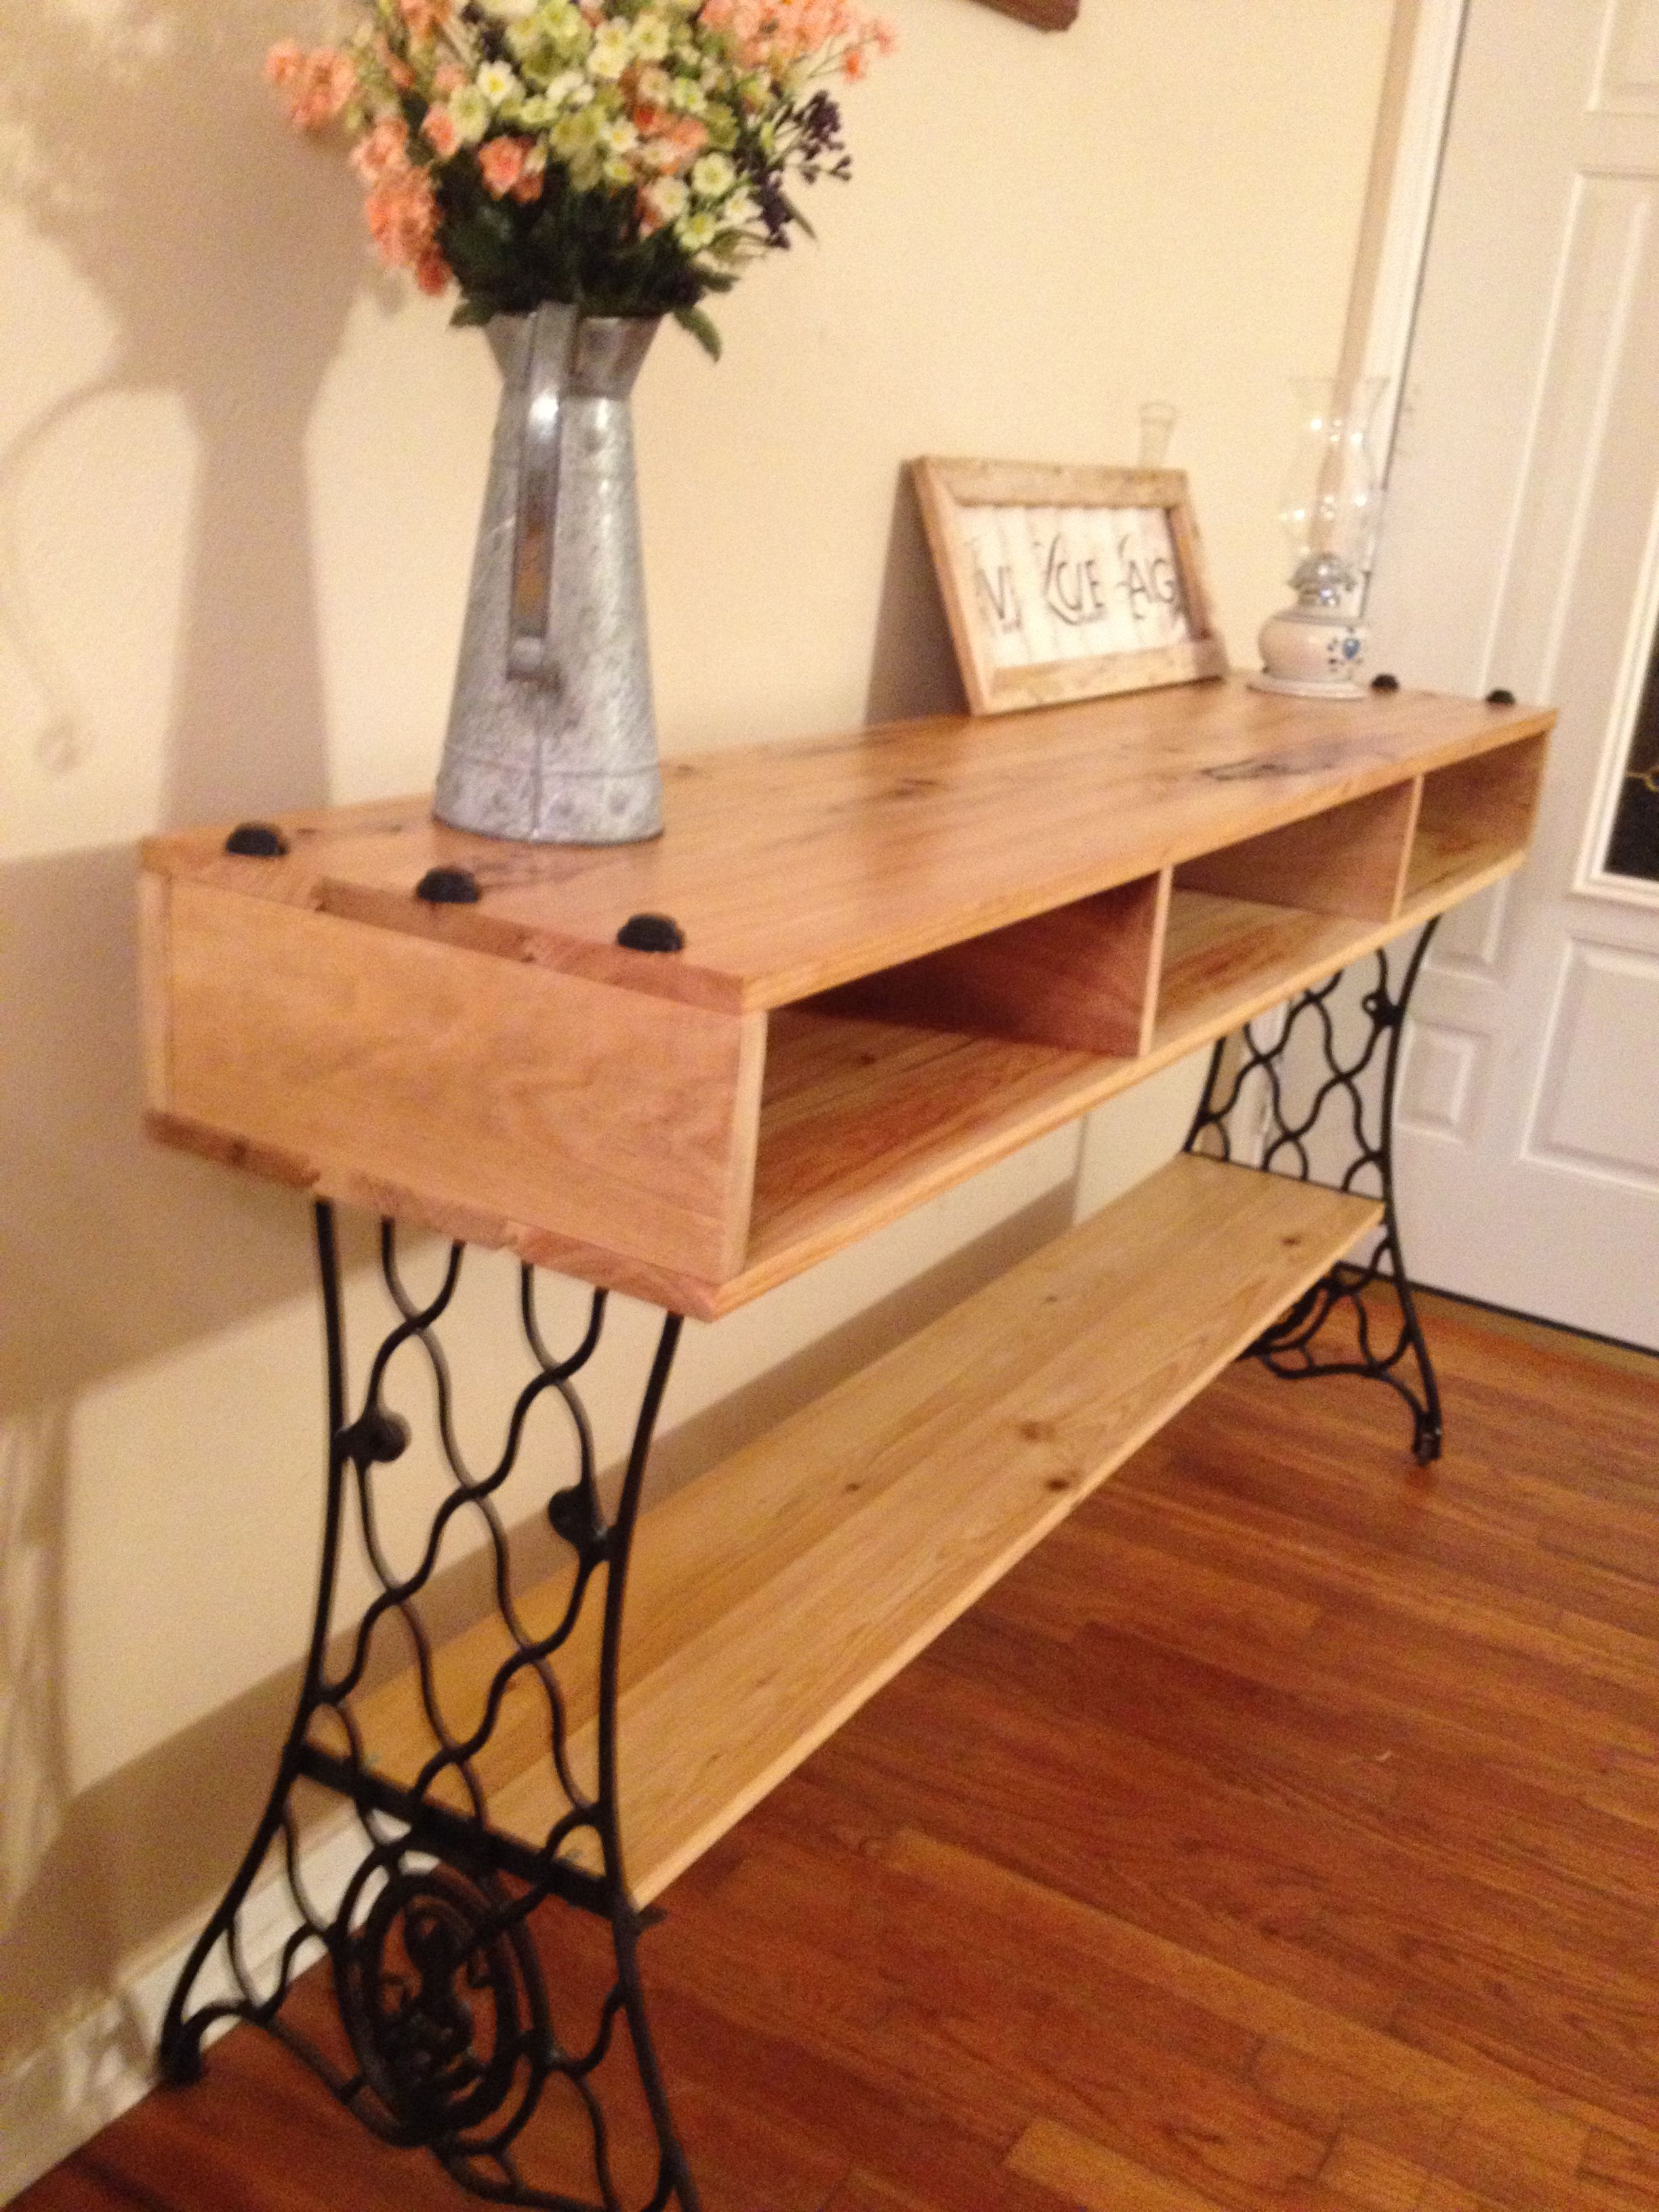 Diy Nail Desk Media Console I Built Using Cypress Wood And Some Old